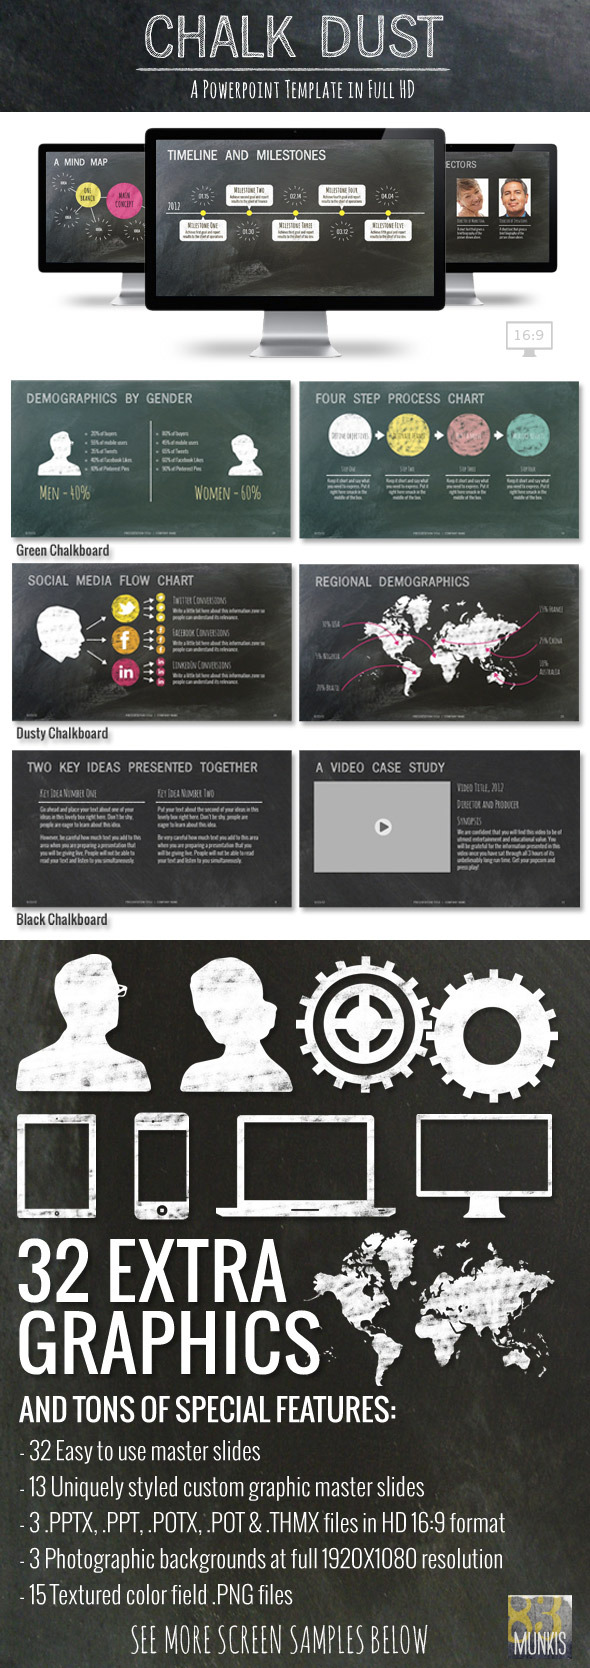 Chalk Dust Powerpoint Presentation Template - Powerpoint Templates Presentation Templates